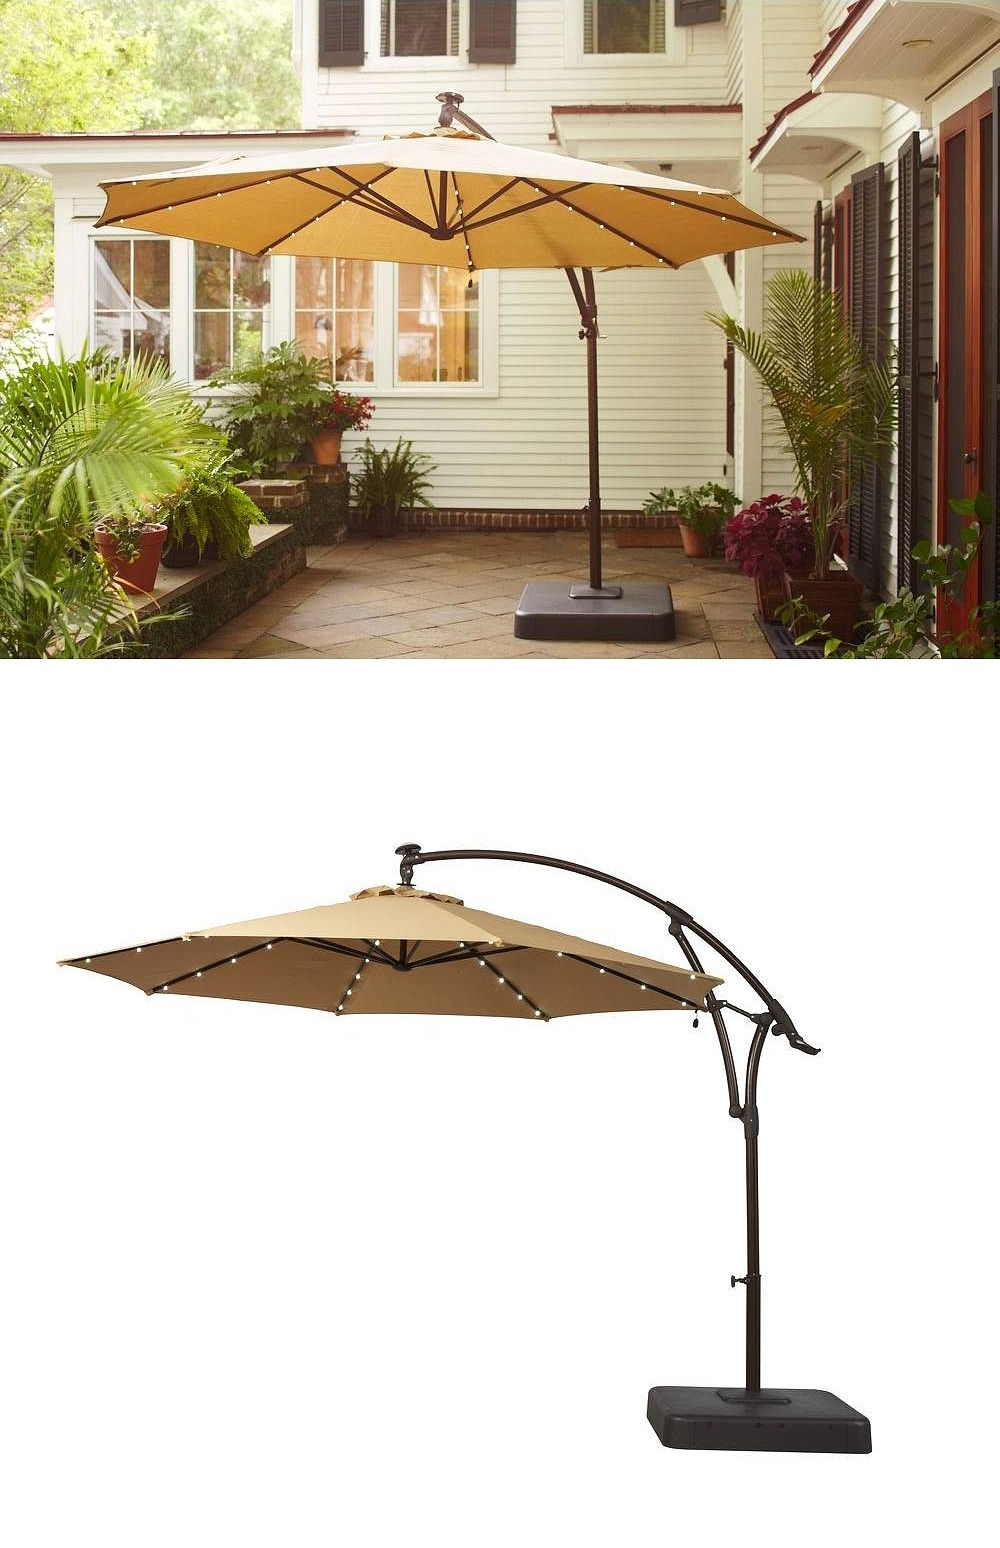 There's Something Special About This Patio Umbrella: It Has Small Within Newest Sunbrella Patio Umbrellas With Solar Lights (View 15 of 20)